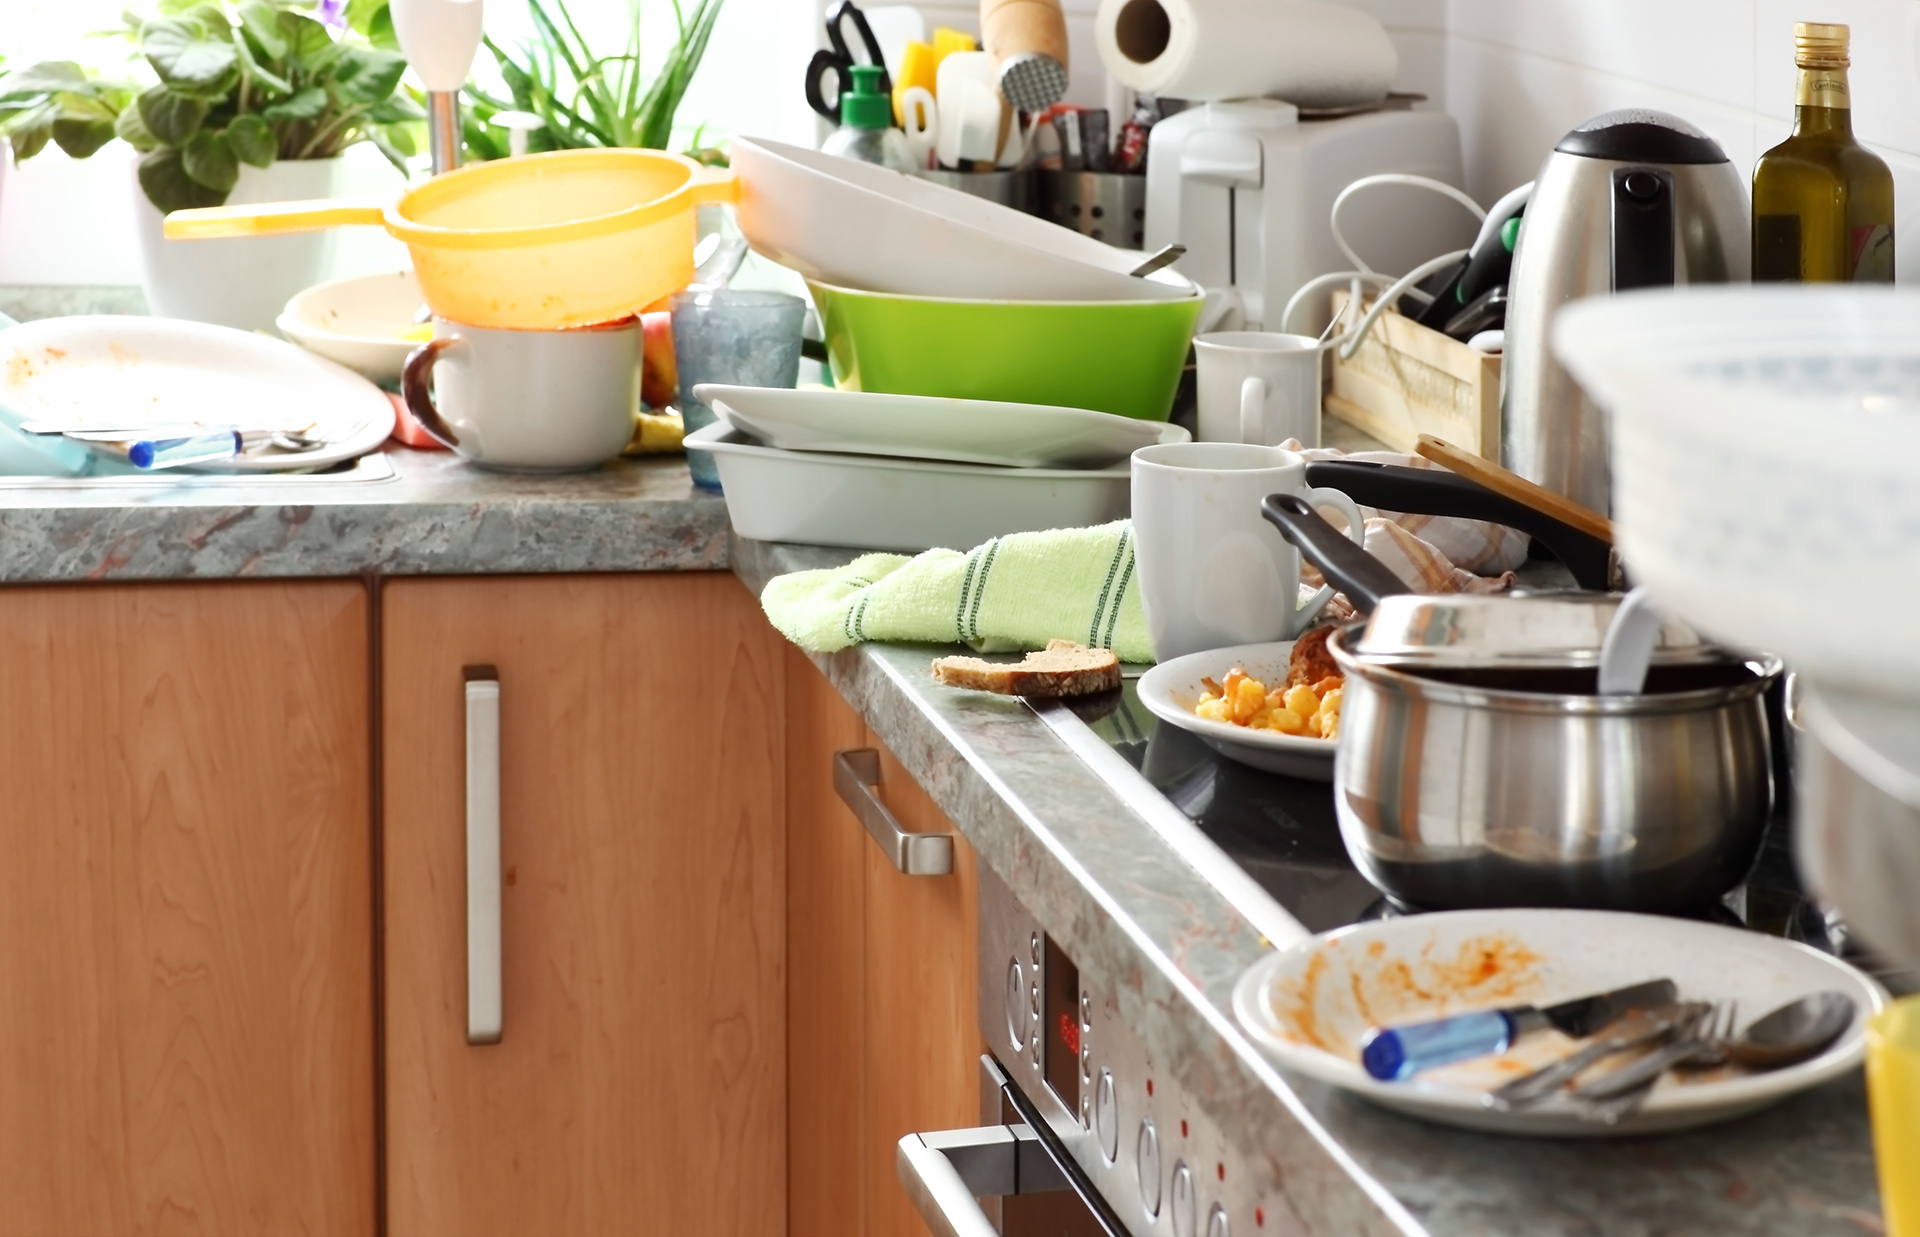 Why We Collect Clutter, and How to Clear It recommendations